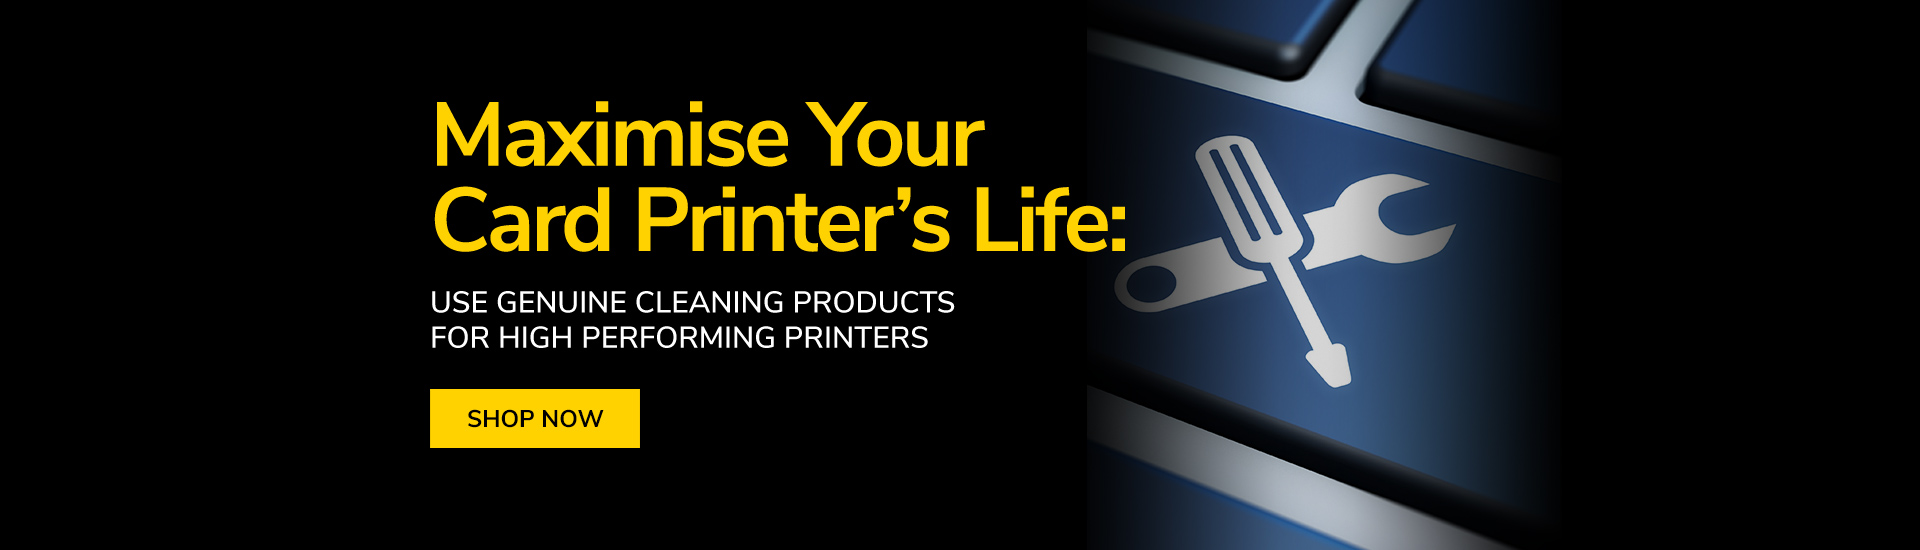 Maximise Your Card Printer's Life - ID Warehouse